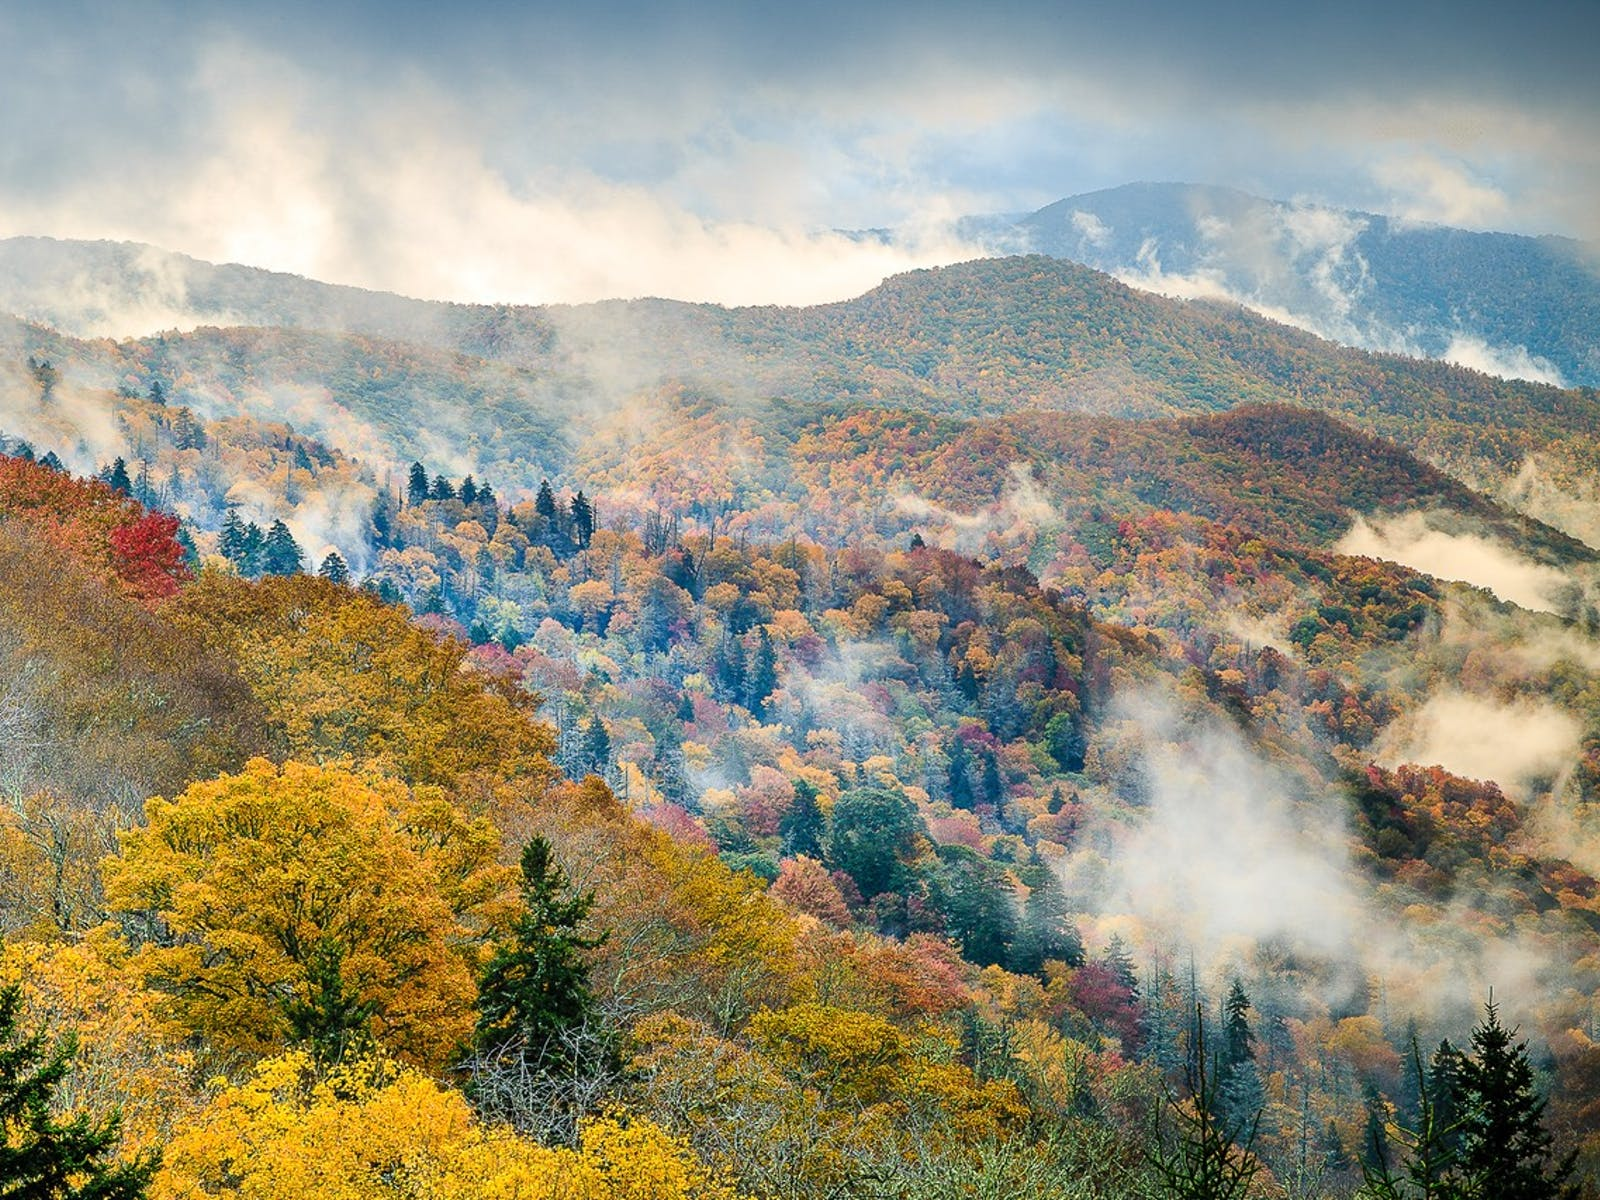 low laying clouds scattered throughout the smoky mountains in tennessee